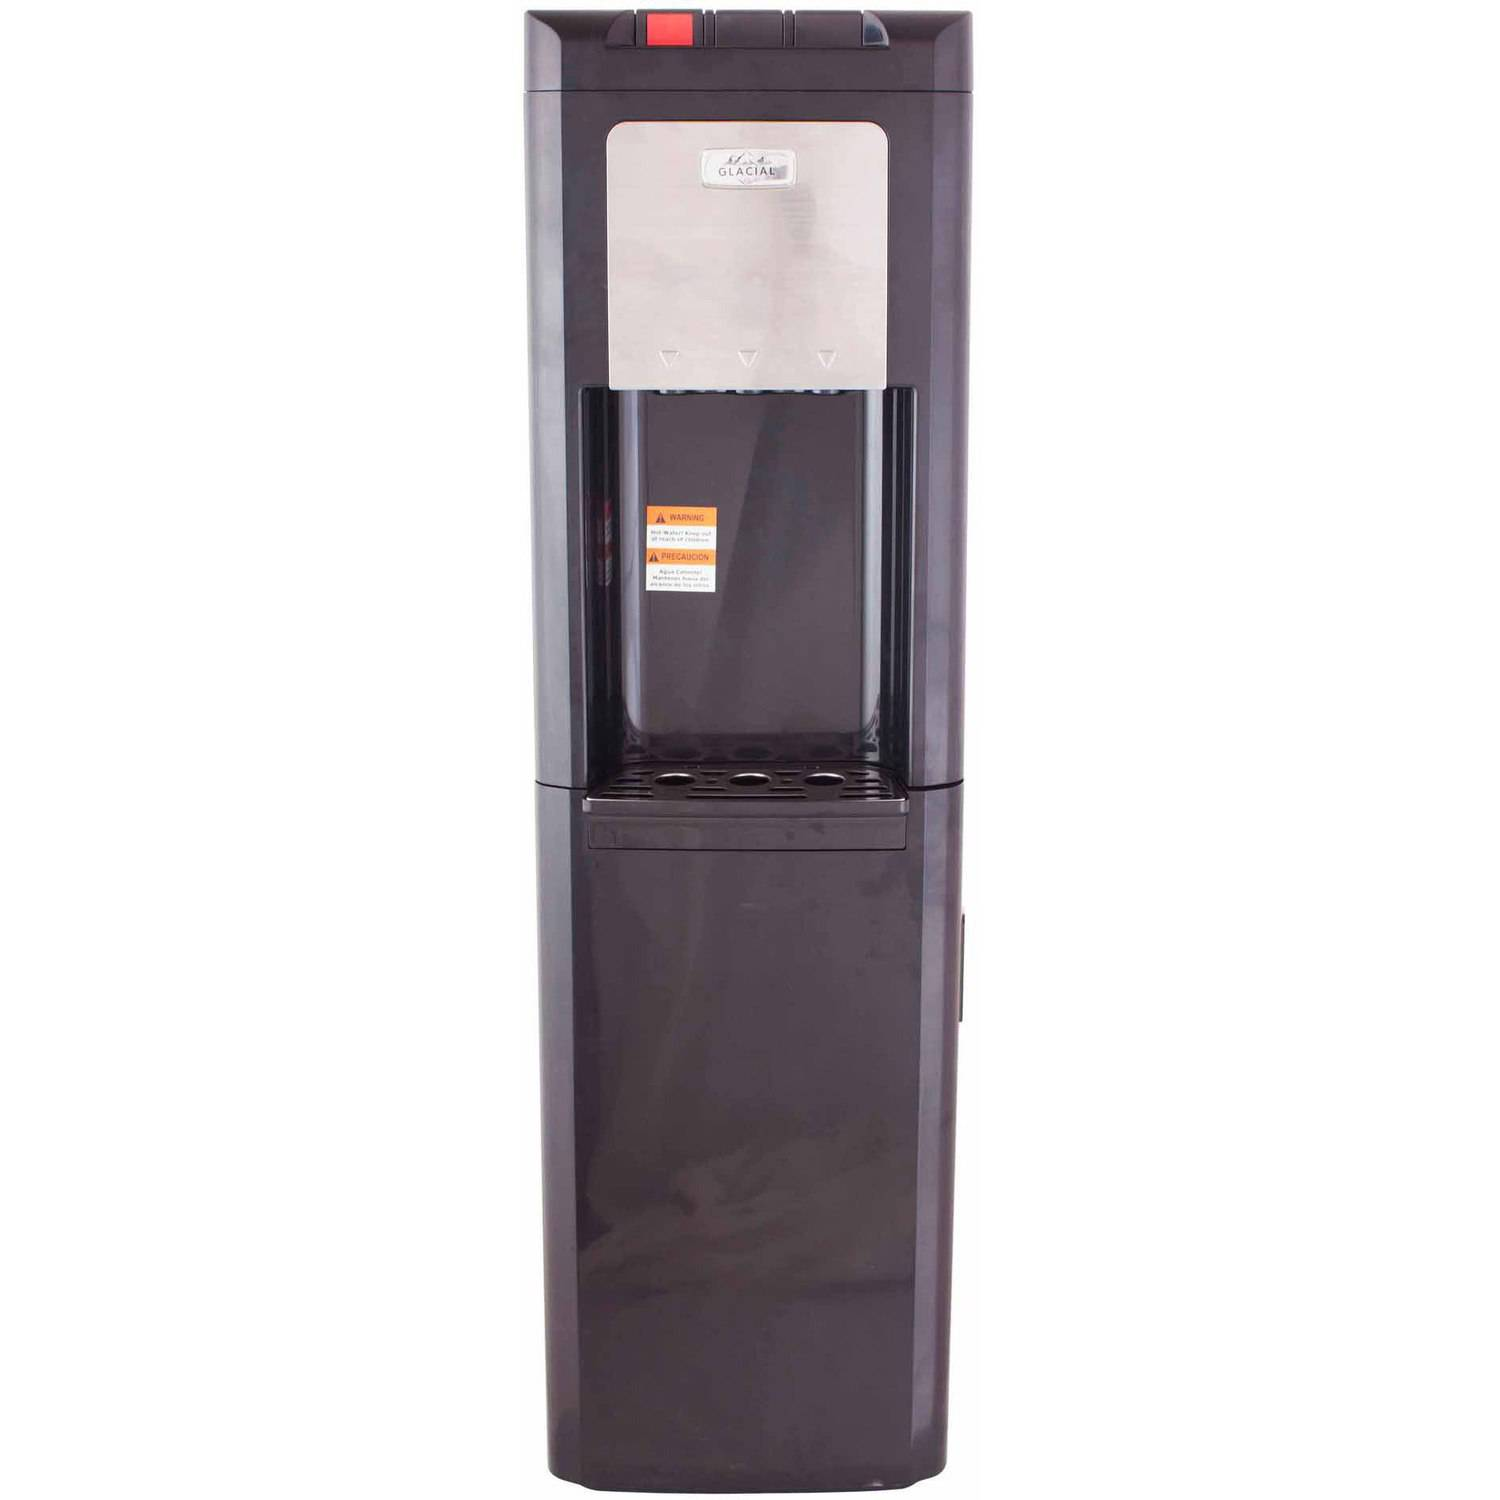 Glacial Water Dispenser Water Cooler and Refrigerator, Black Top-Load